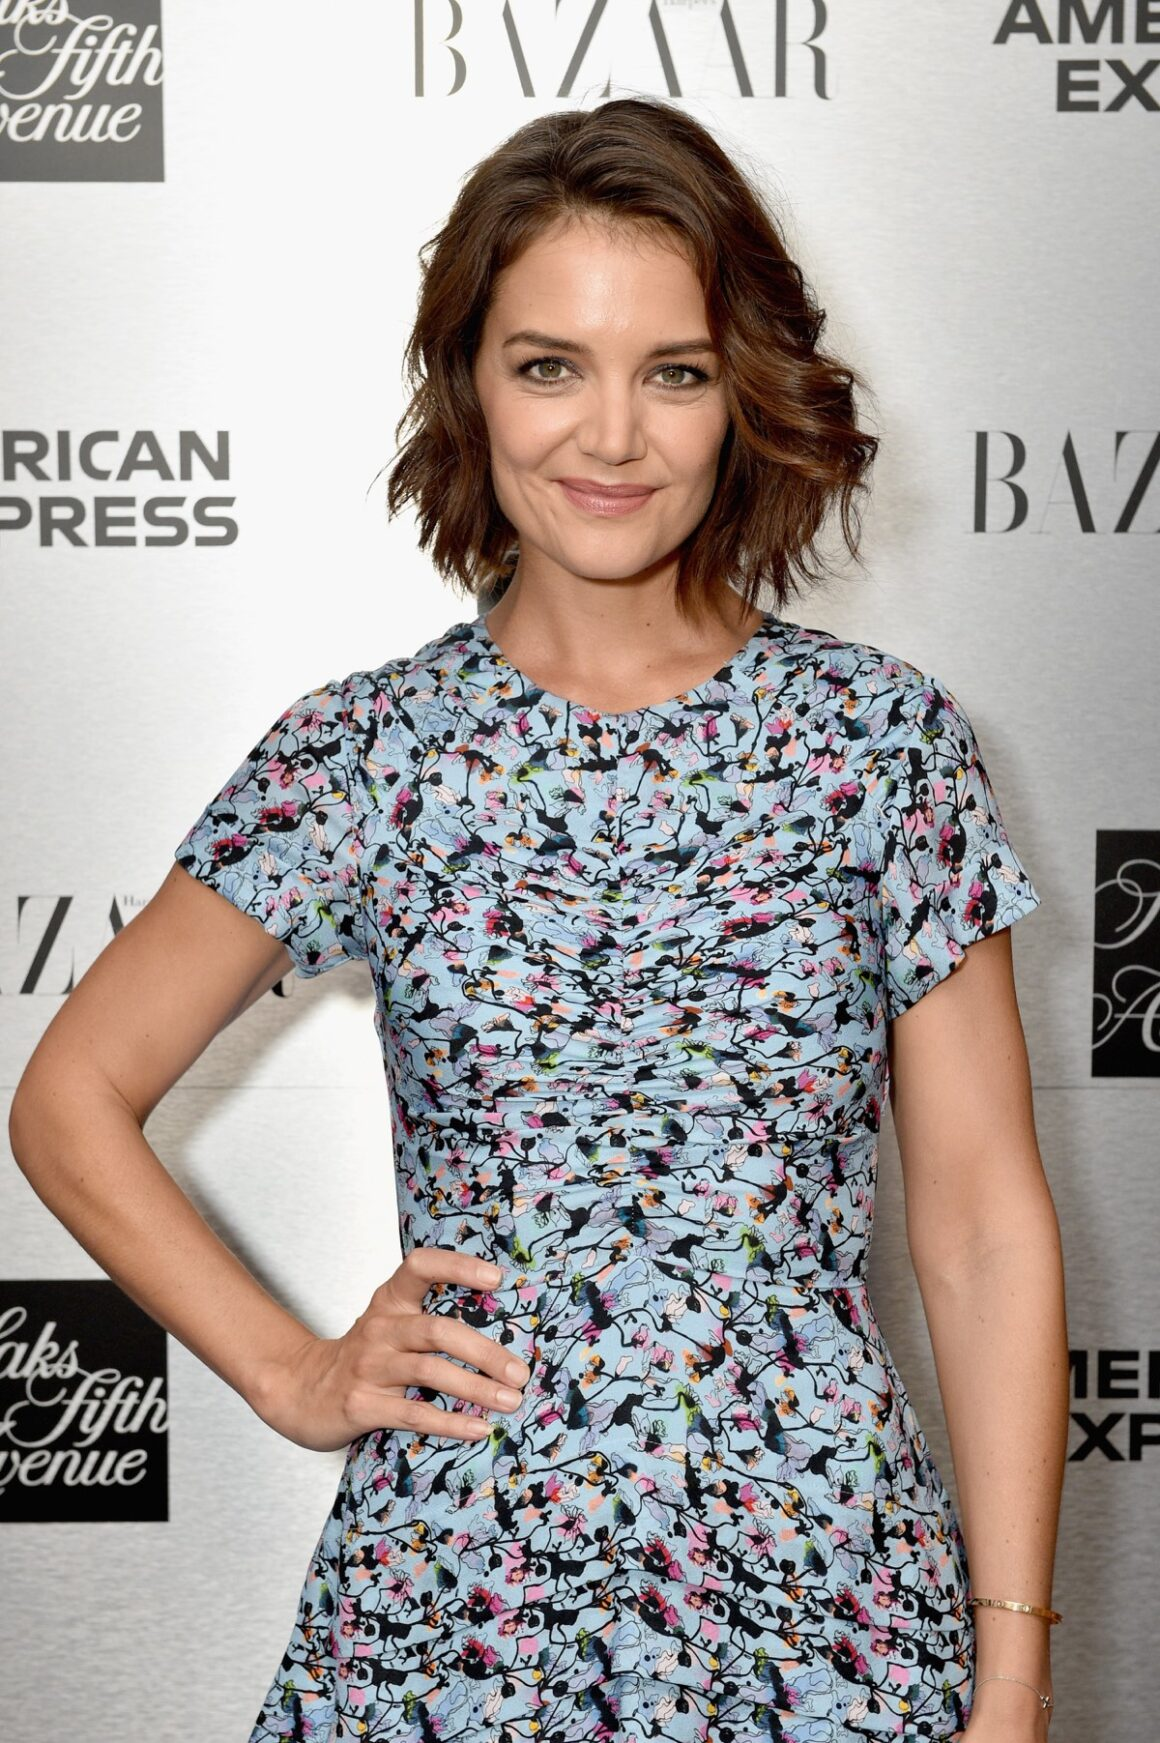 Katie Holmes Glenda Bailey And Katie Holmes Host The Launch Of The Saks IT List Townhouse In Partnership With American Express And Harper's BAZAAR